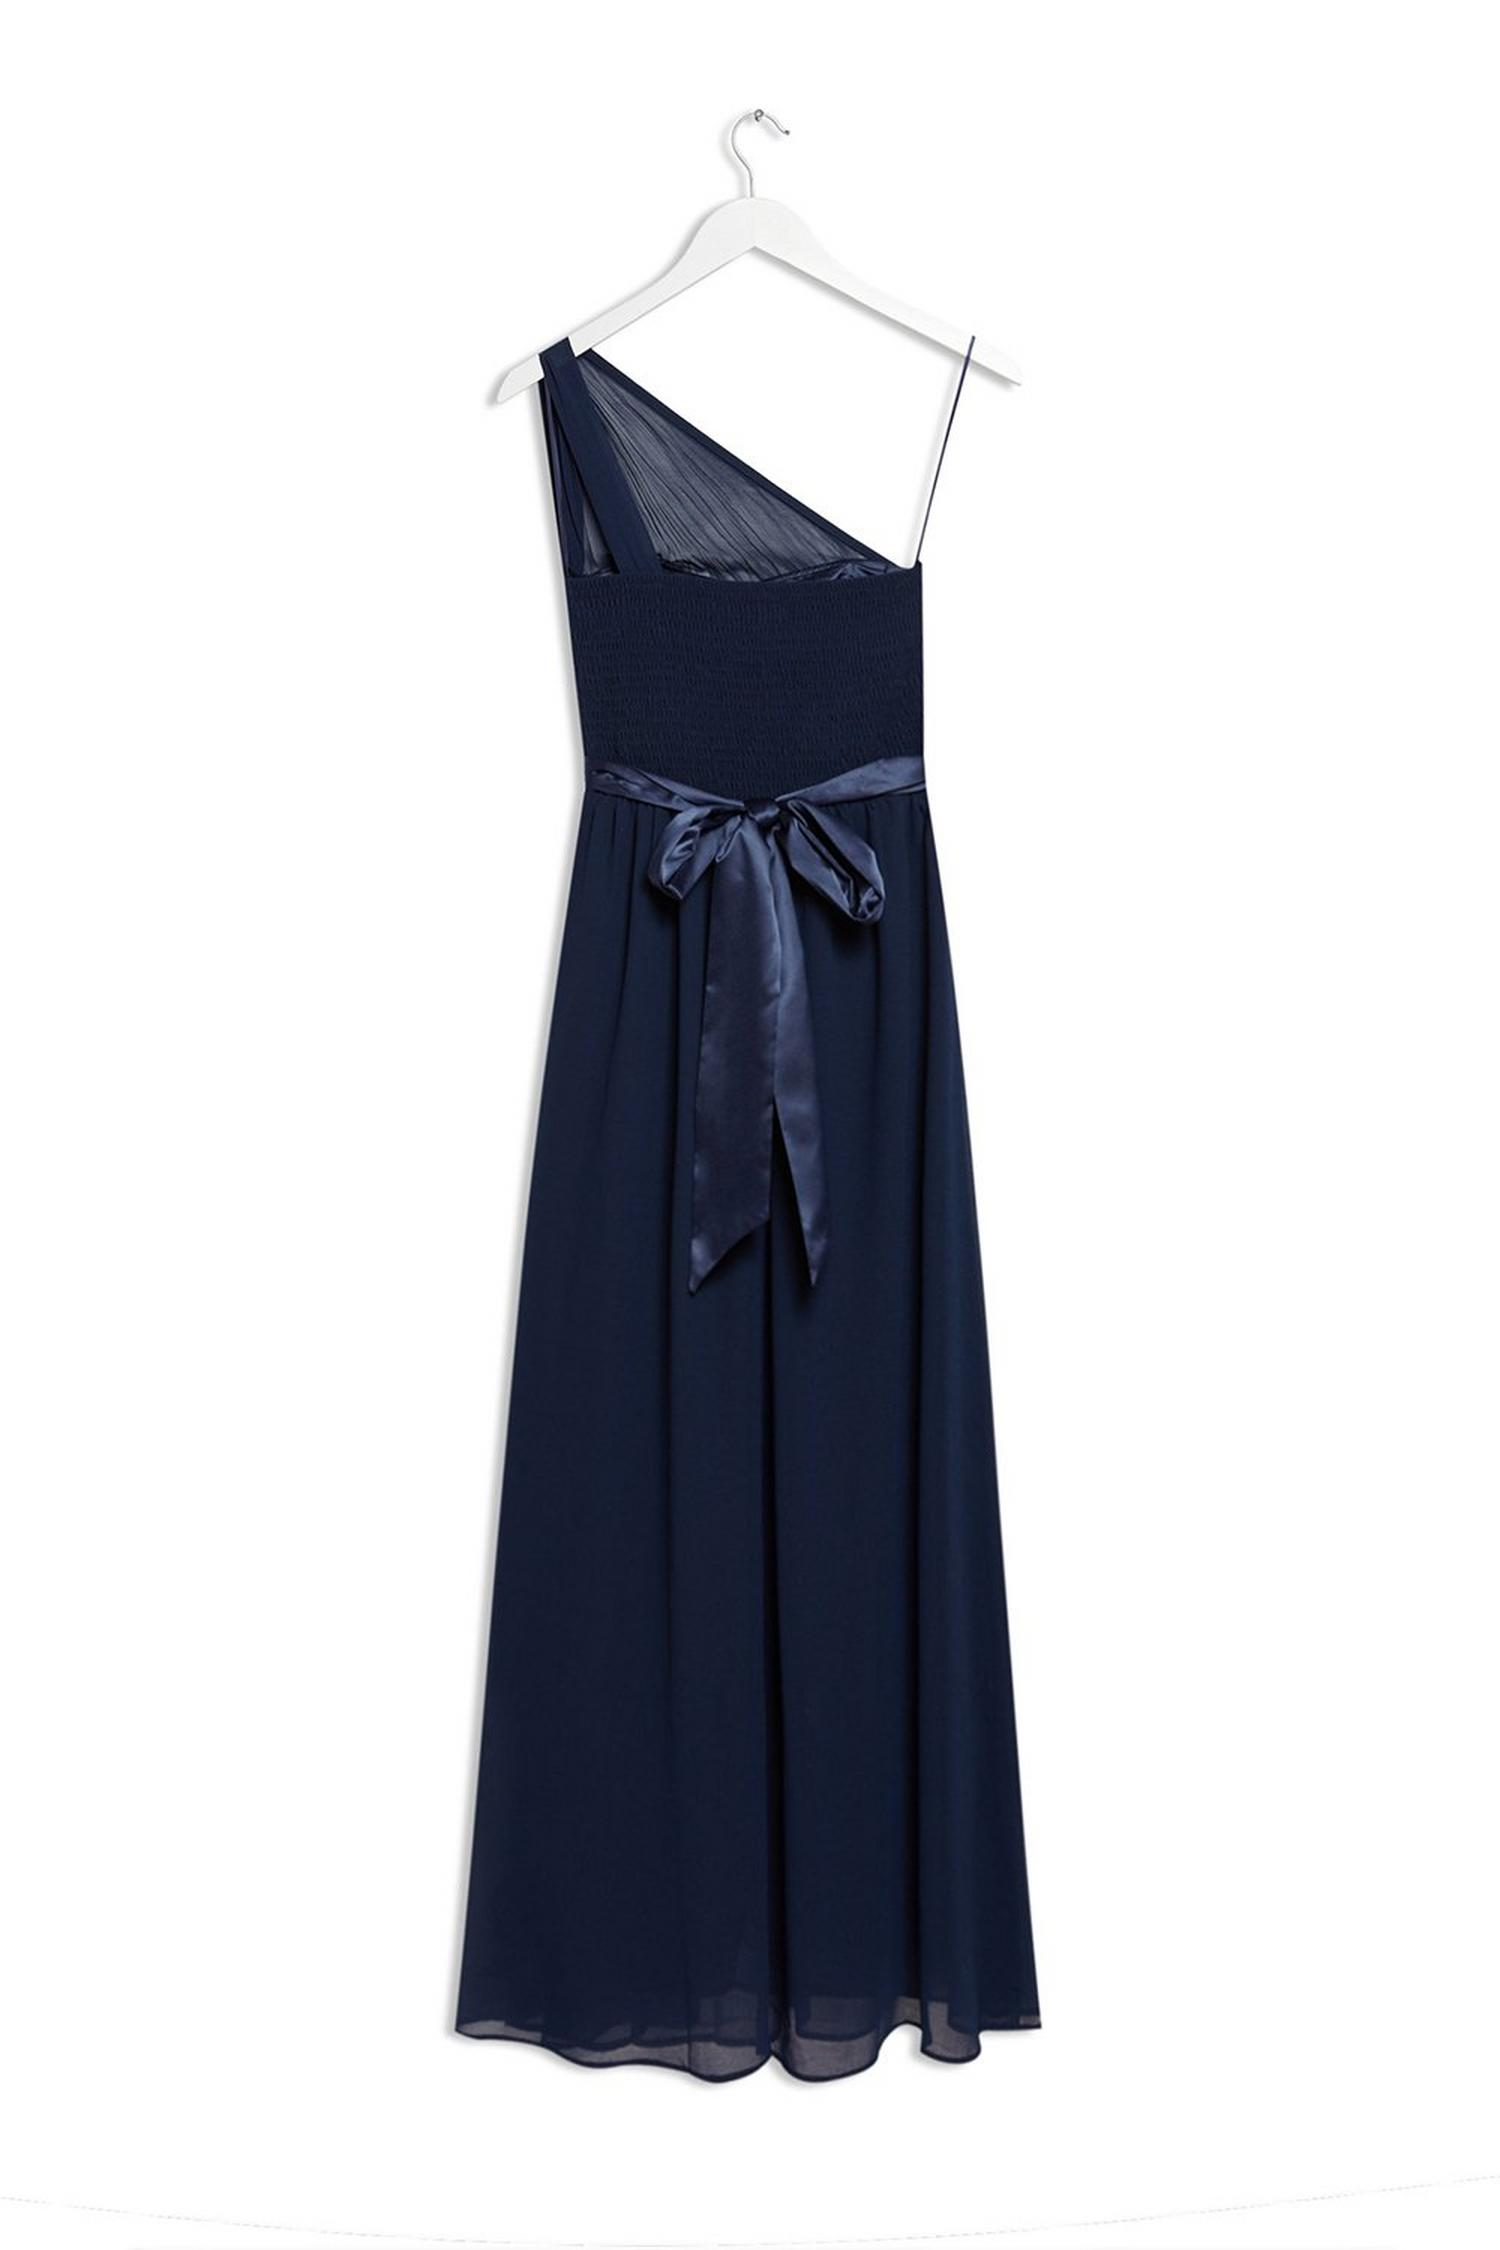 148 Navy Sadie Maxi Dress image number 2